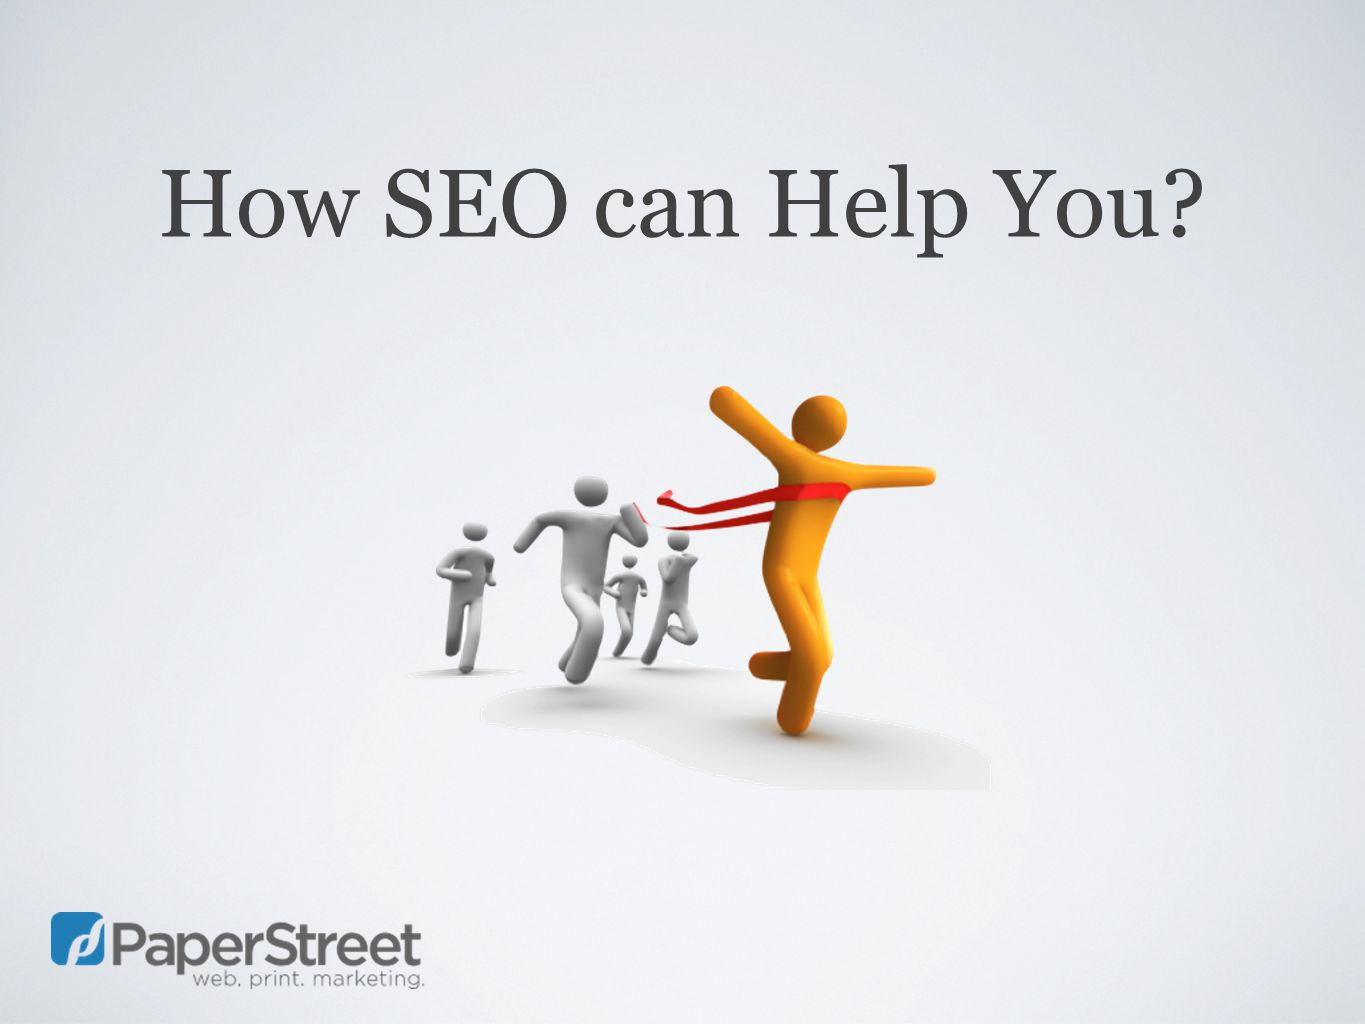 How SEO can Help You